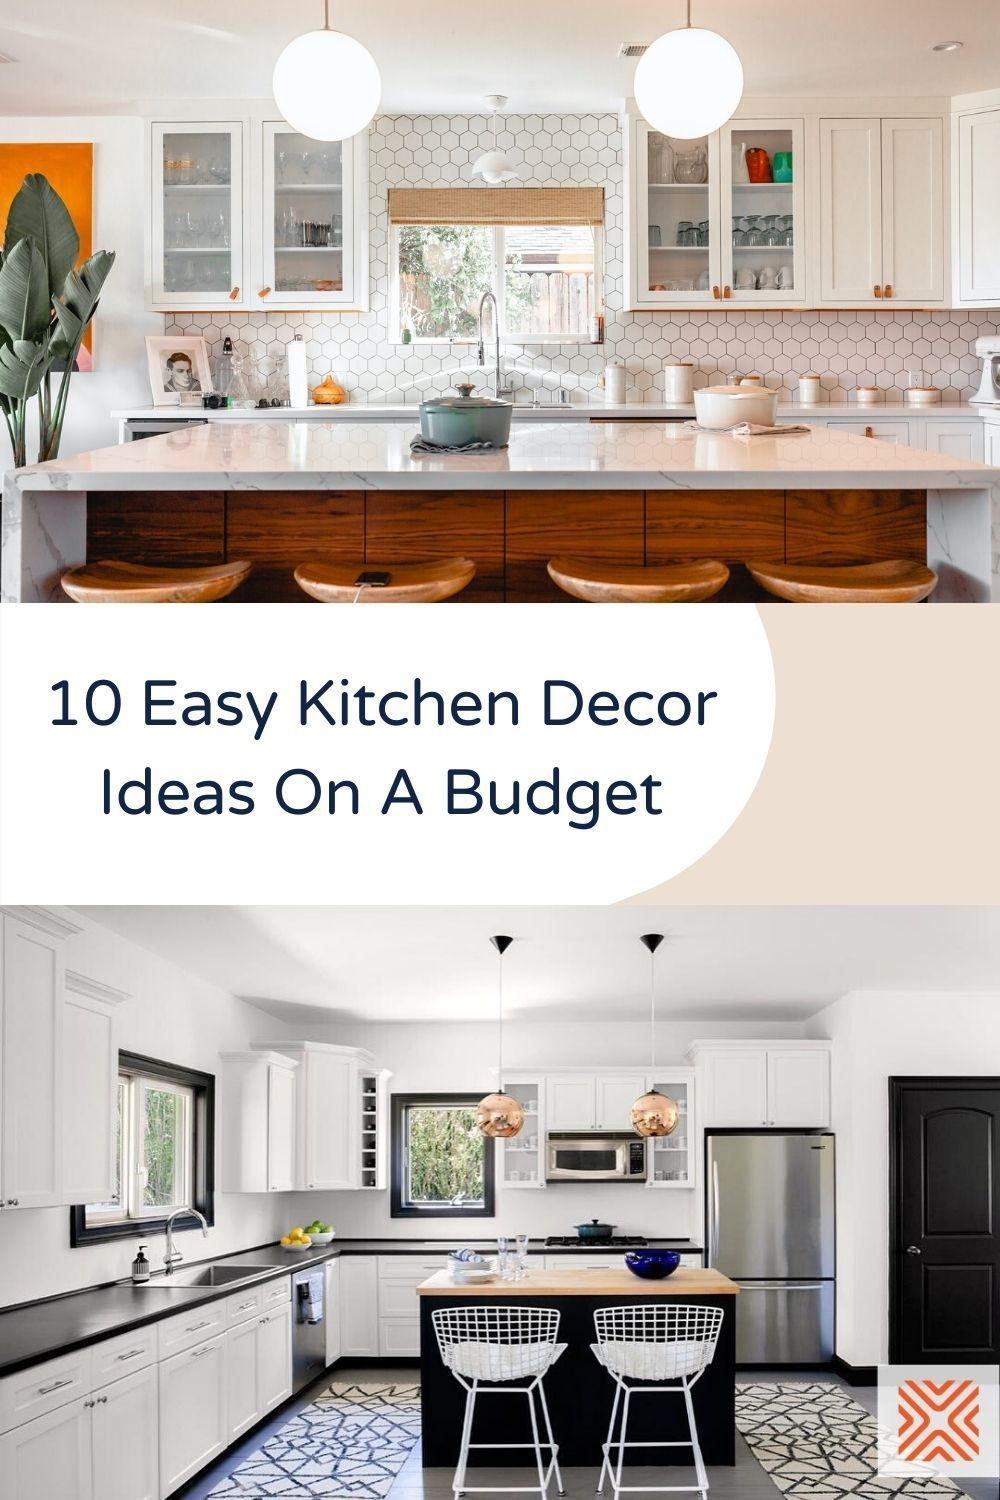 Trying to decorate a kitchen on a budget? These 10 affordable kitchen decorating ideas are proof that you don't always need to empty your bank balance for that perfect kitchen design.